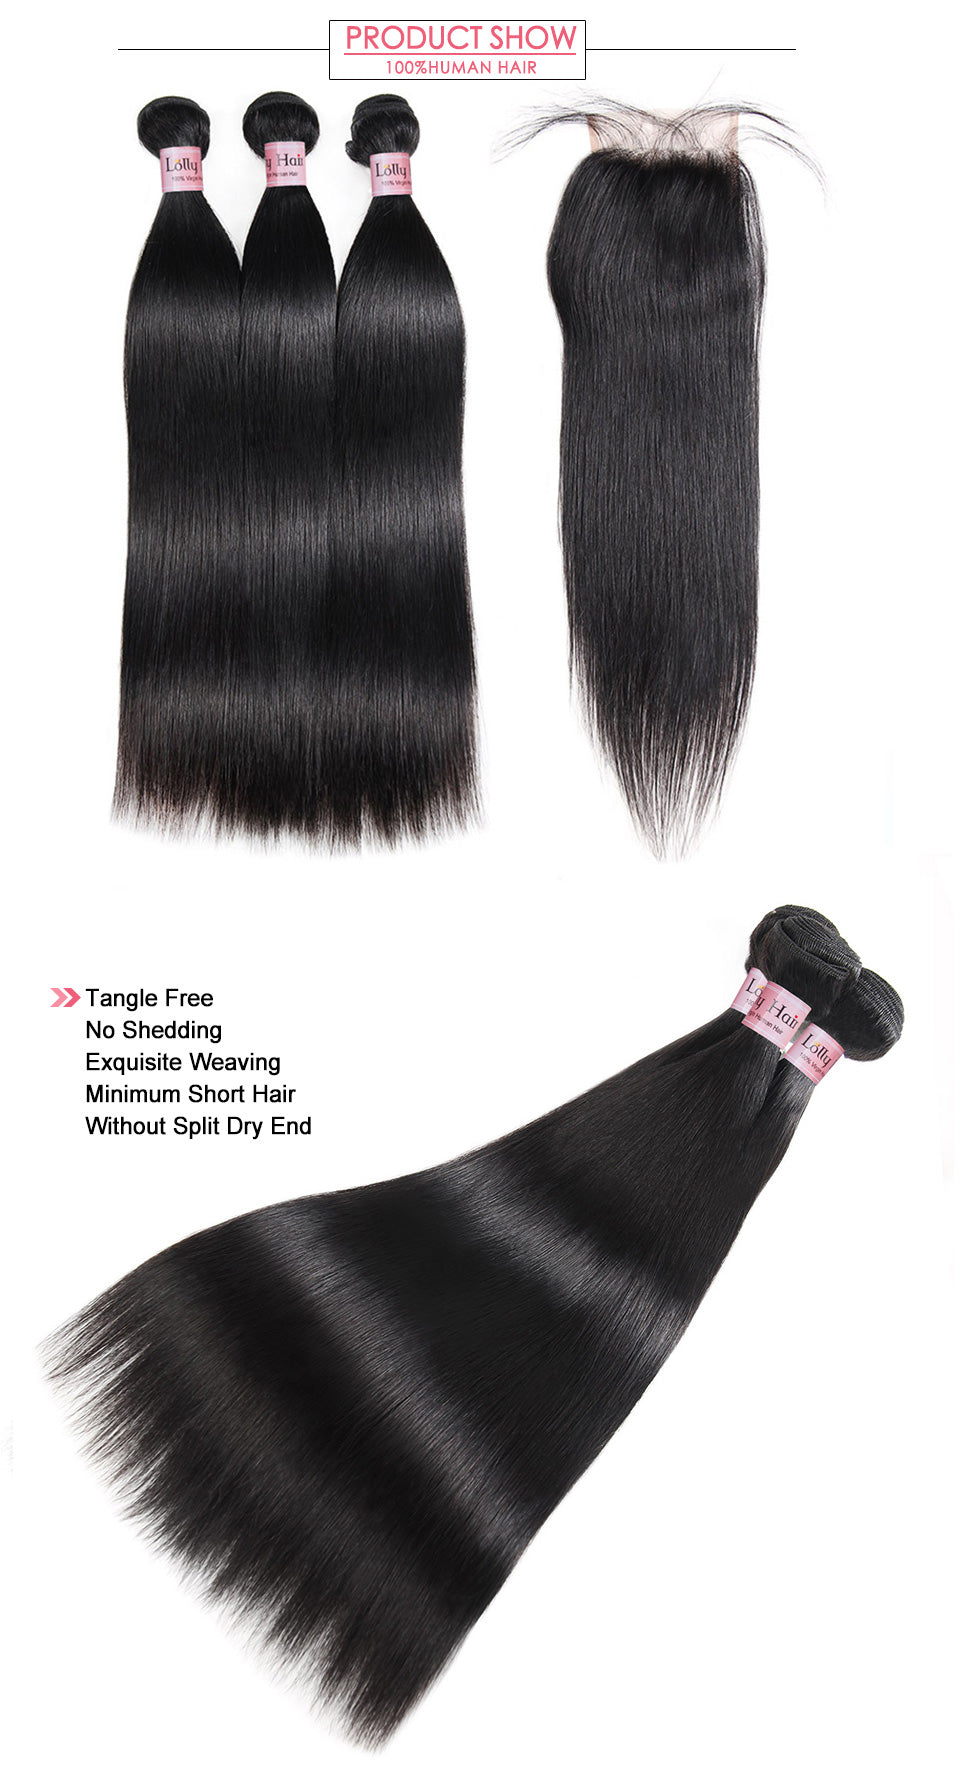 Lolly Virgin Remy Indian Straight Hair 3 Bundles with 4x4 Lace Closure